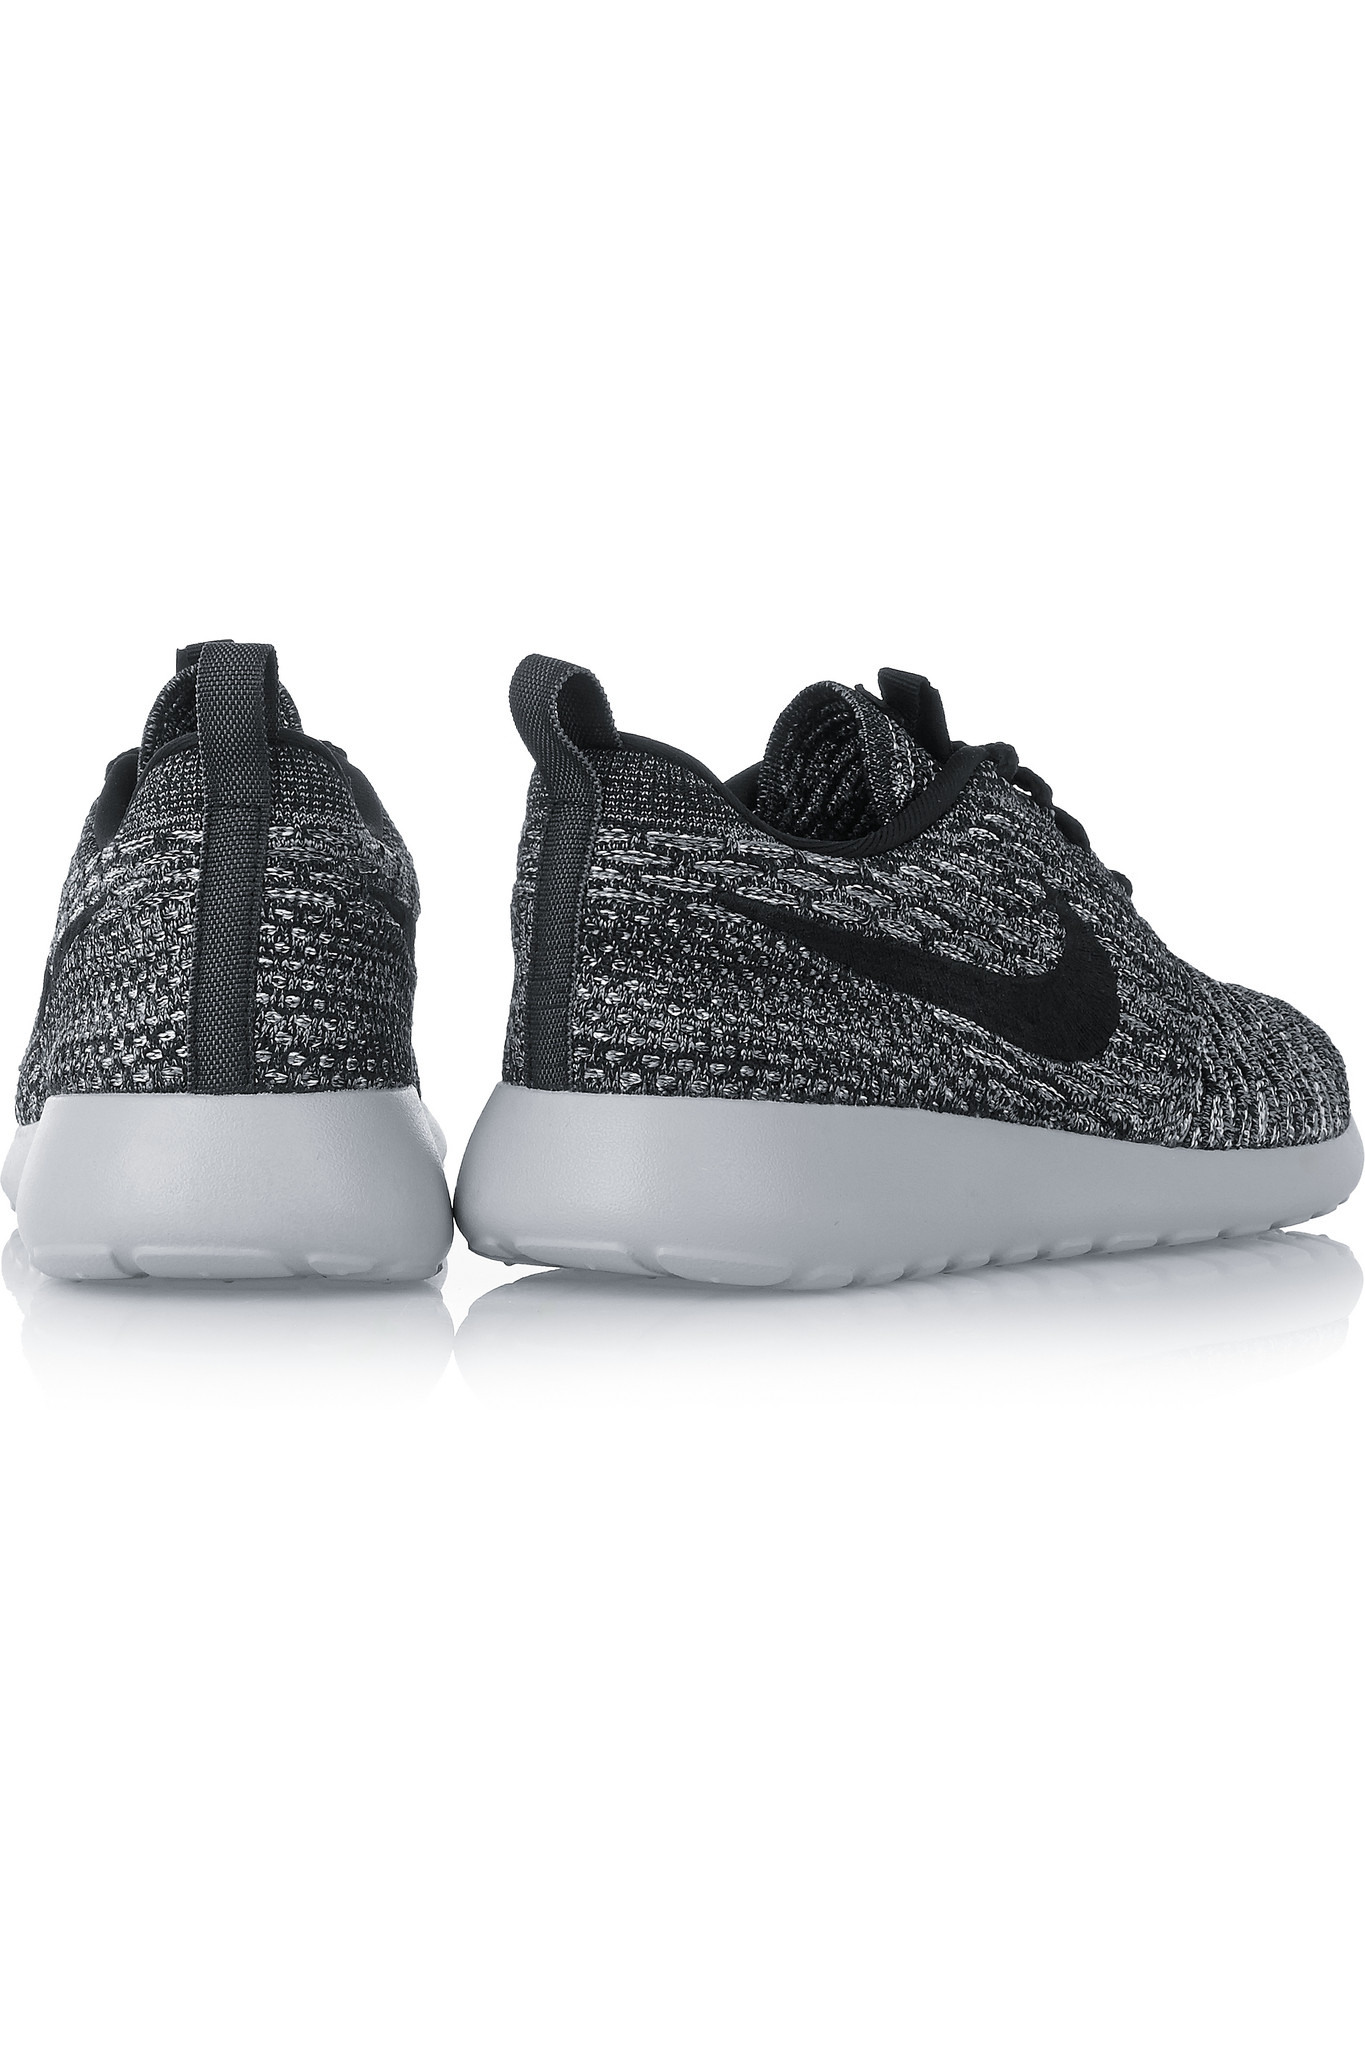 81cb6e7097d0 Nike Roshe One Flyknit Mesh Sneakers in Gray - Lyst